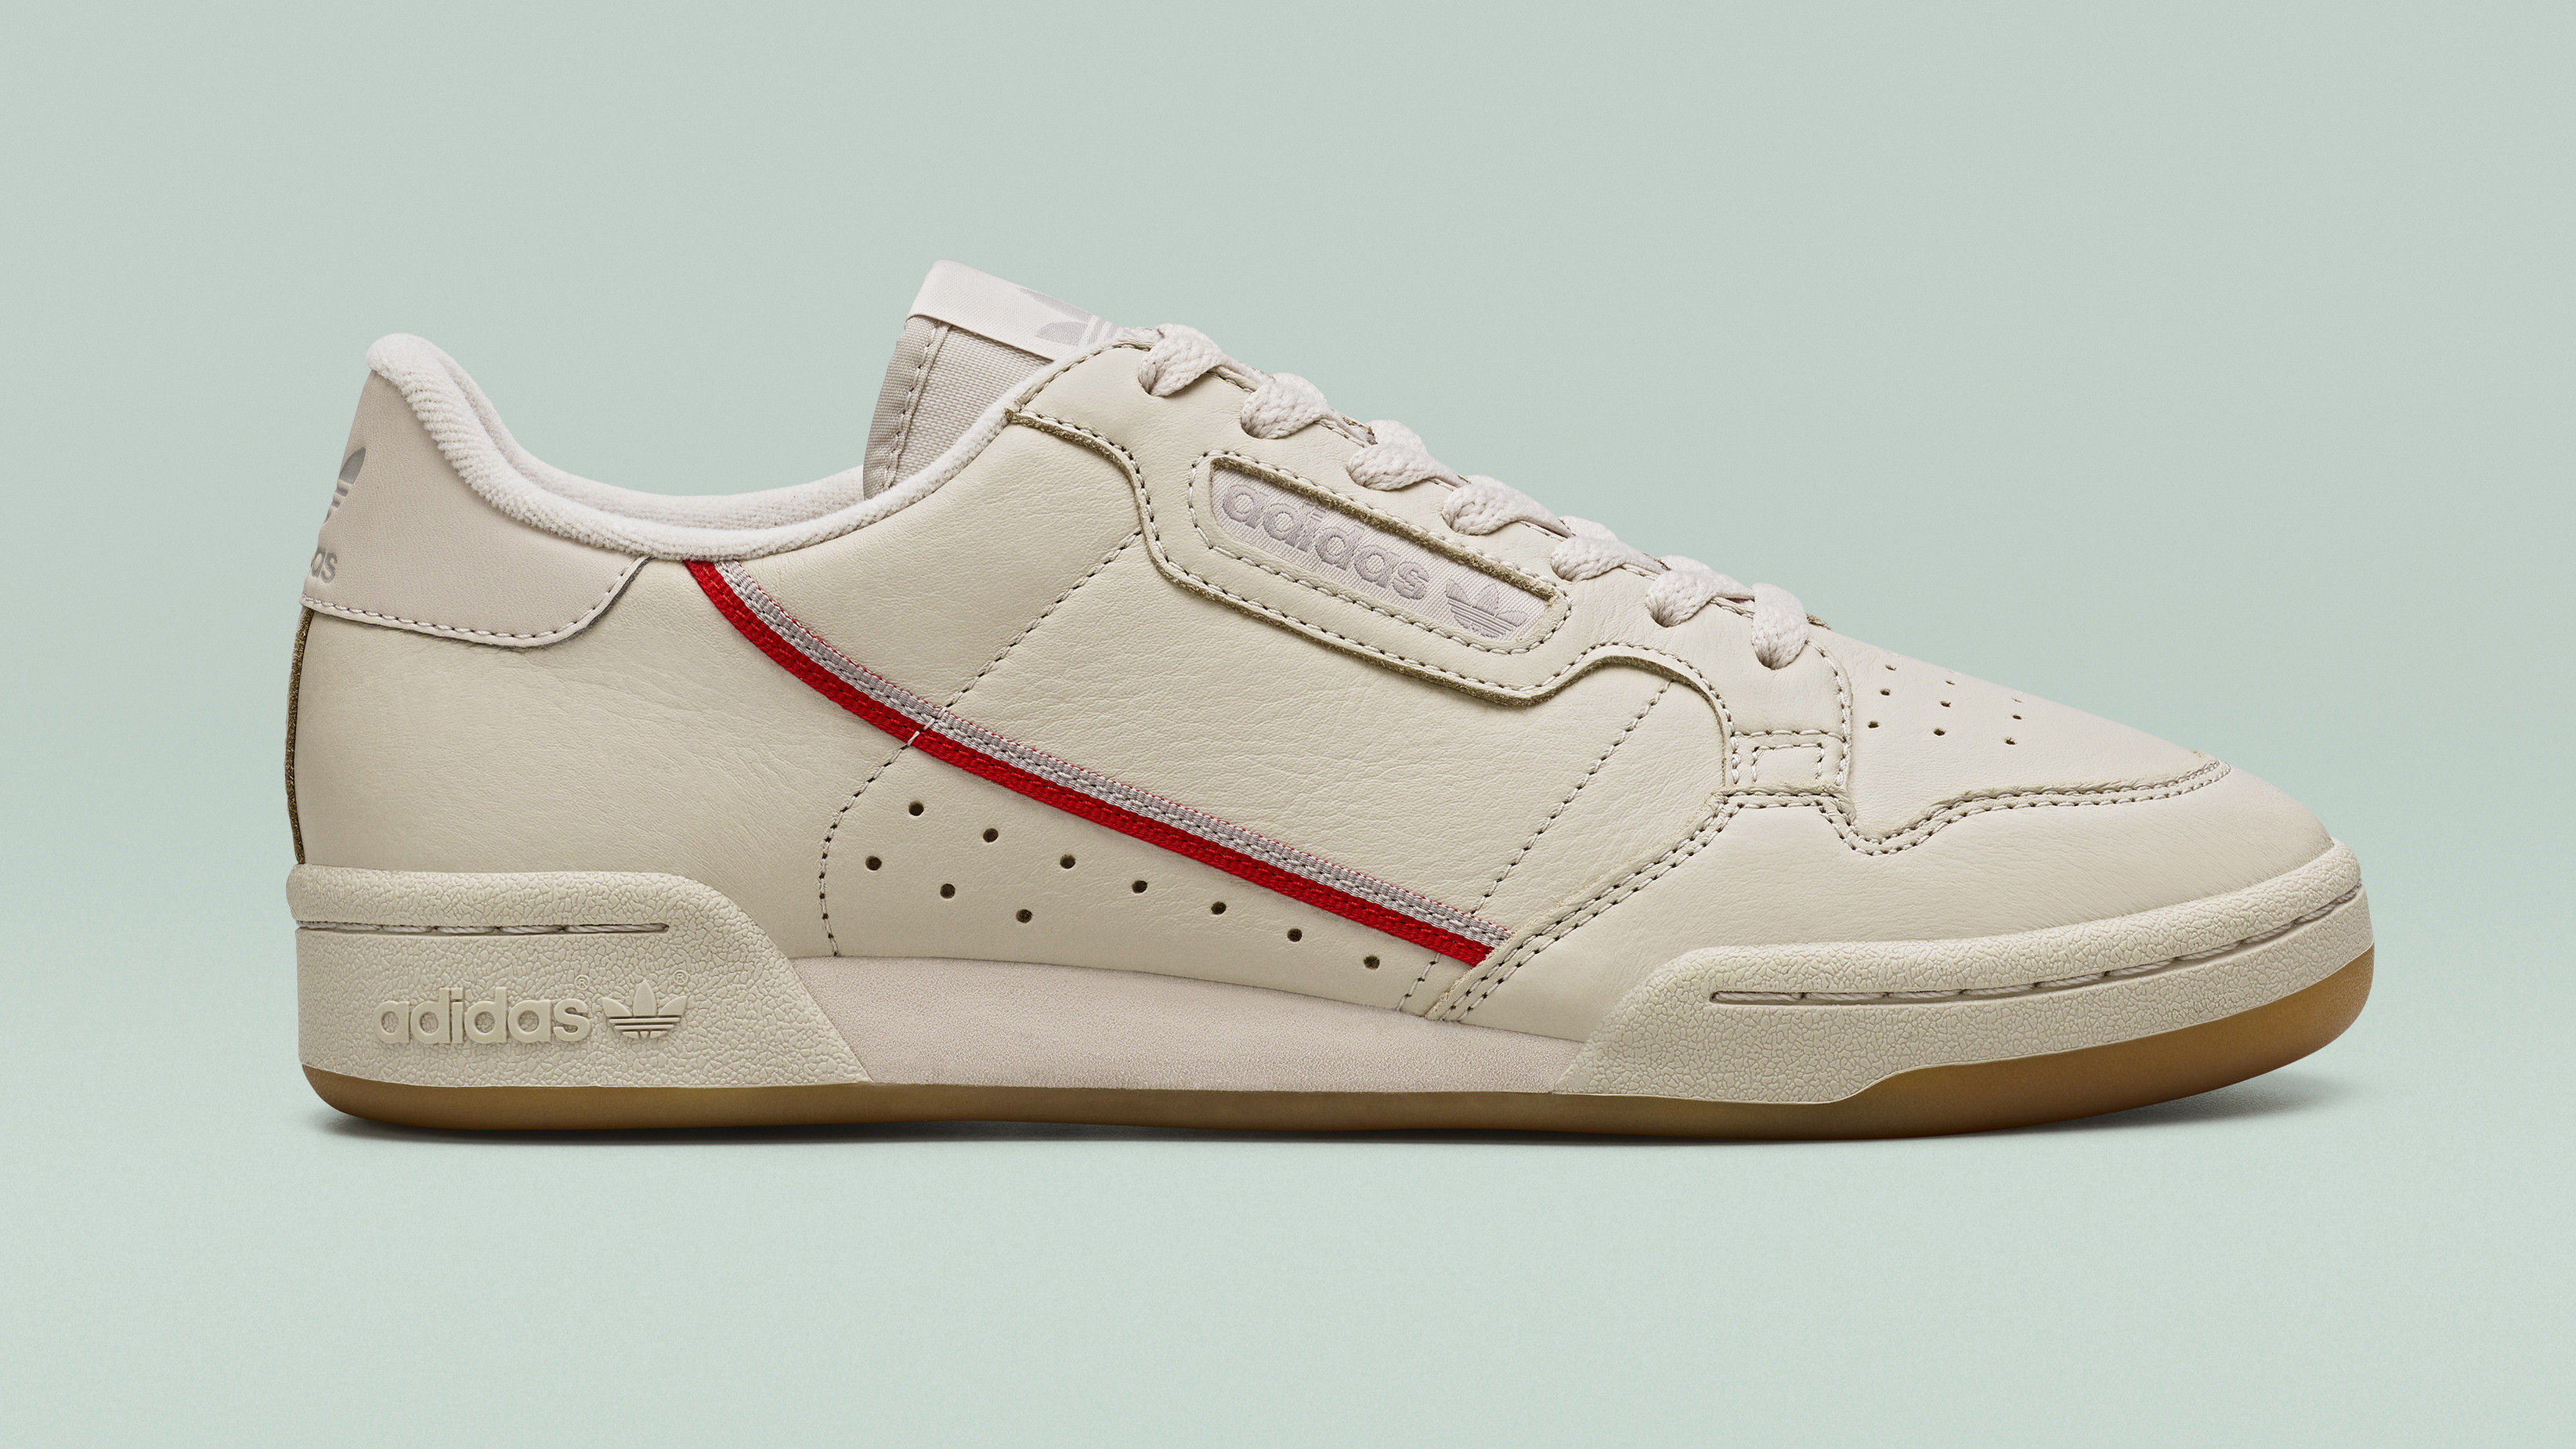 b1f43d81c0c2a Adidas Continental 80 March 2019 Collection Release Date